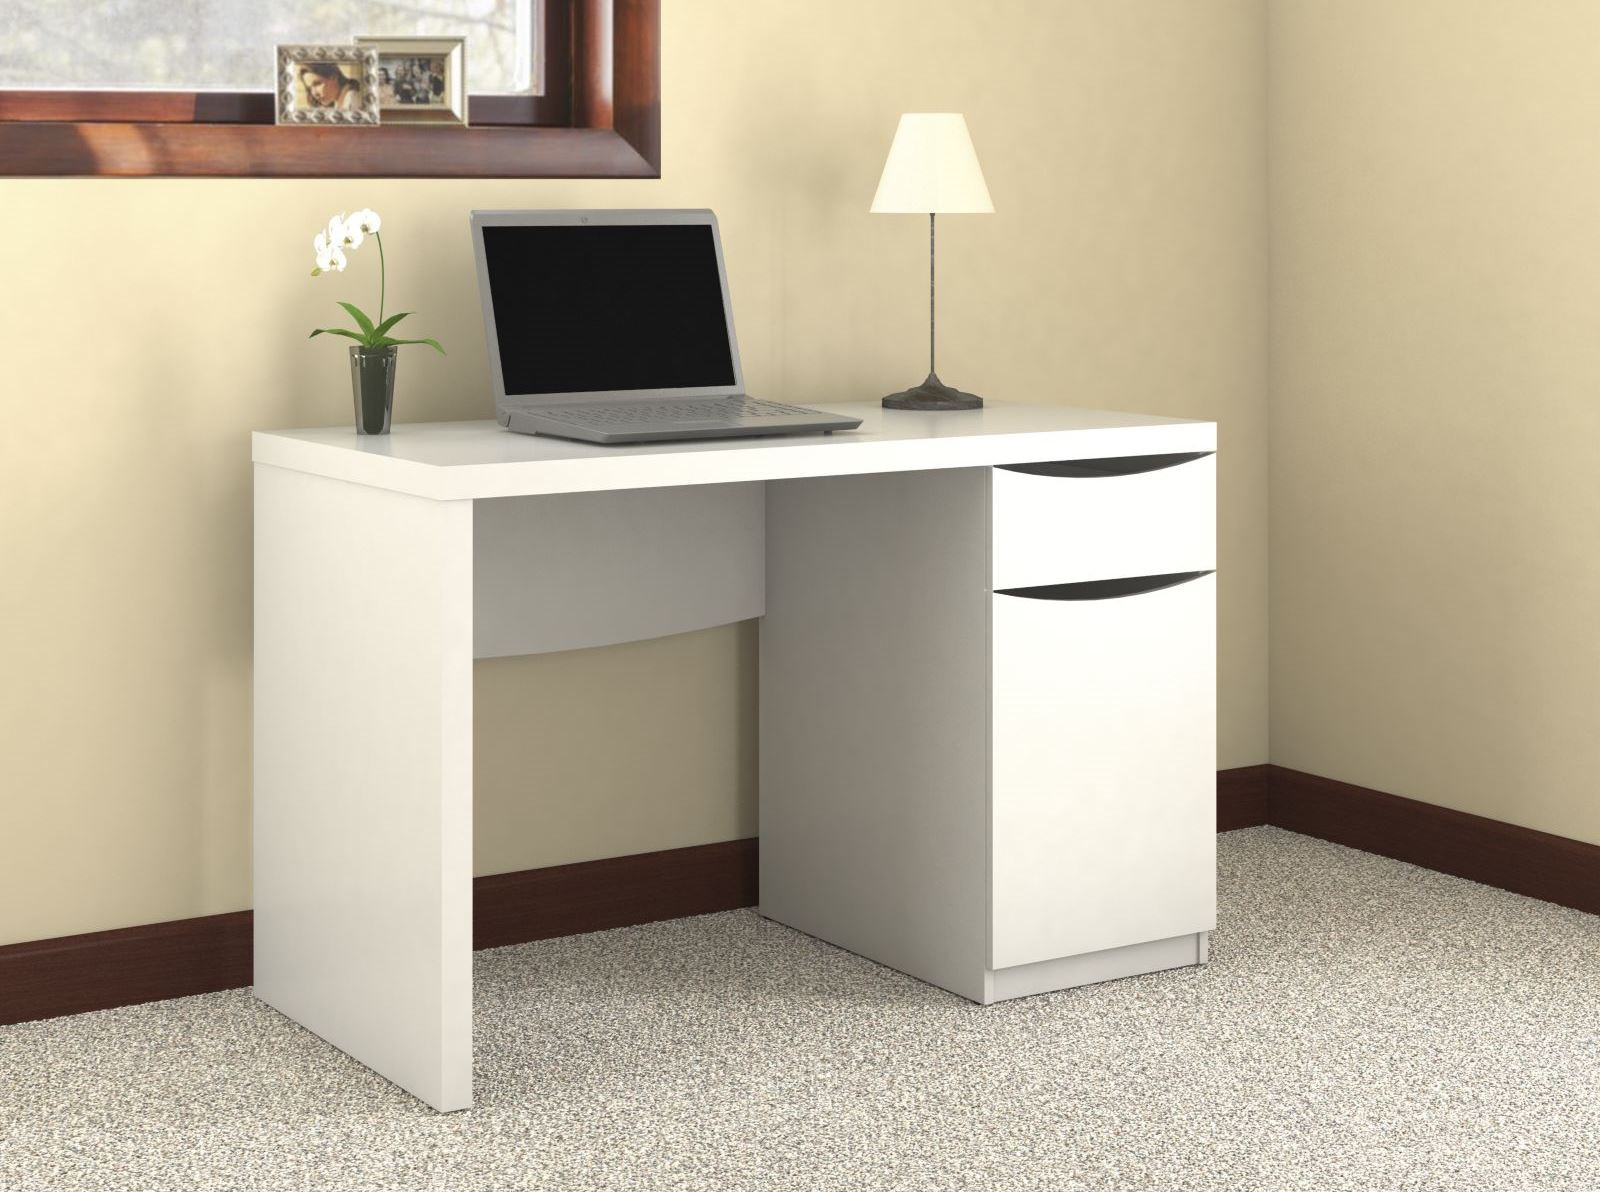 Montrese Pure White Desk From Bush My72117 03 Coleman